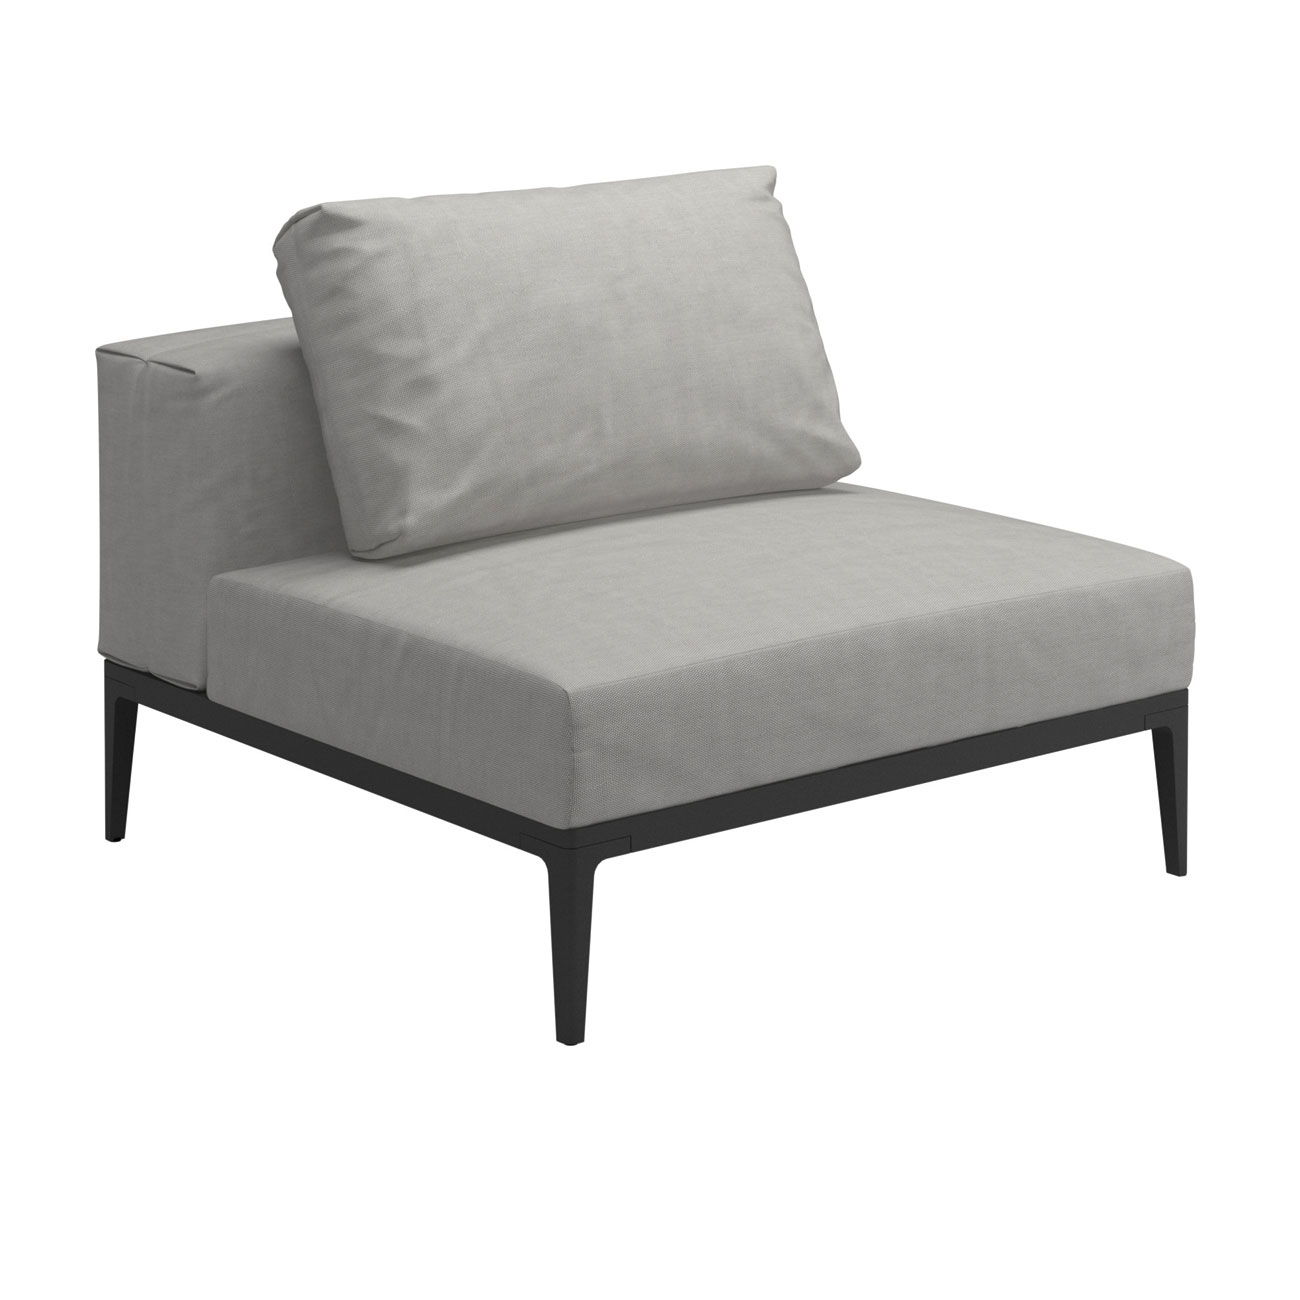 Gloster grid modular sofa center unit luxury outdoor for Sofa modular gris